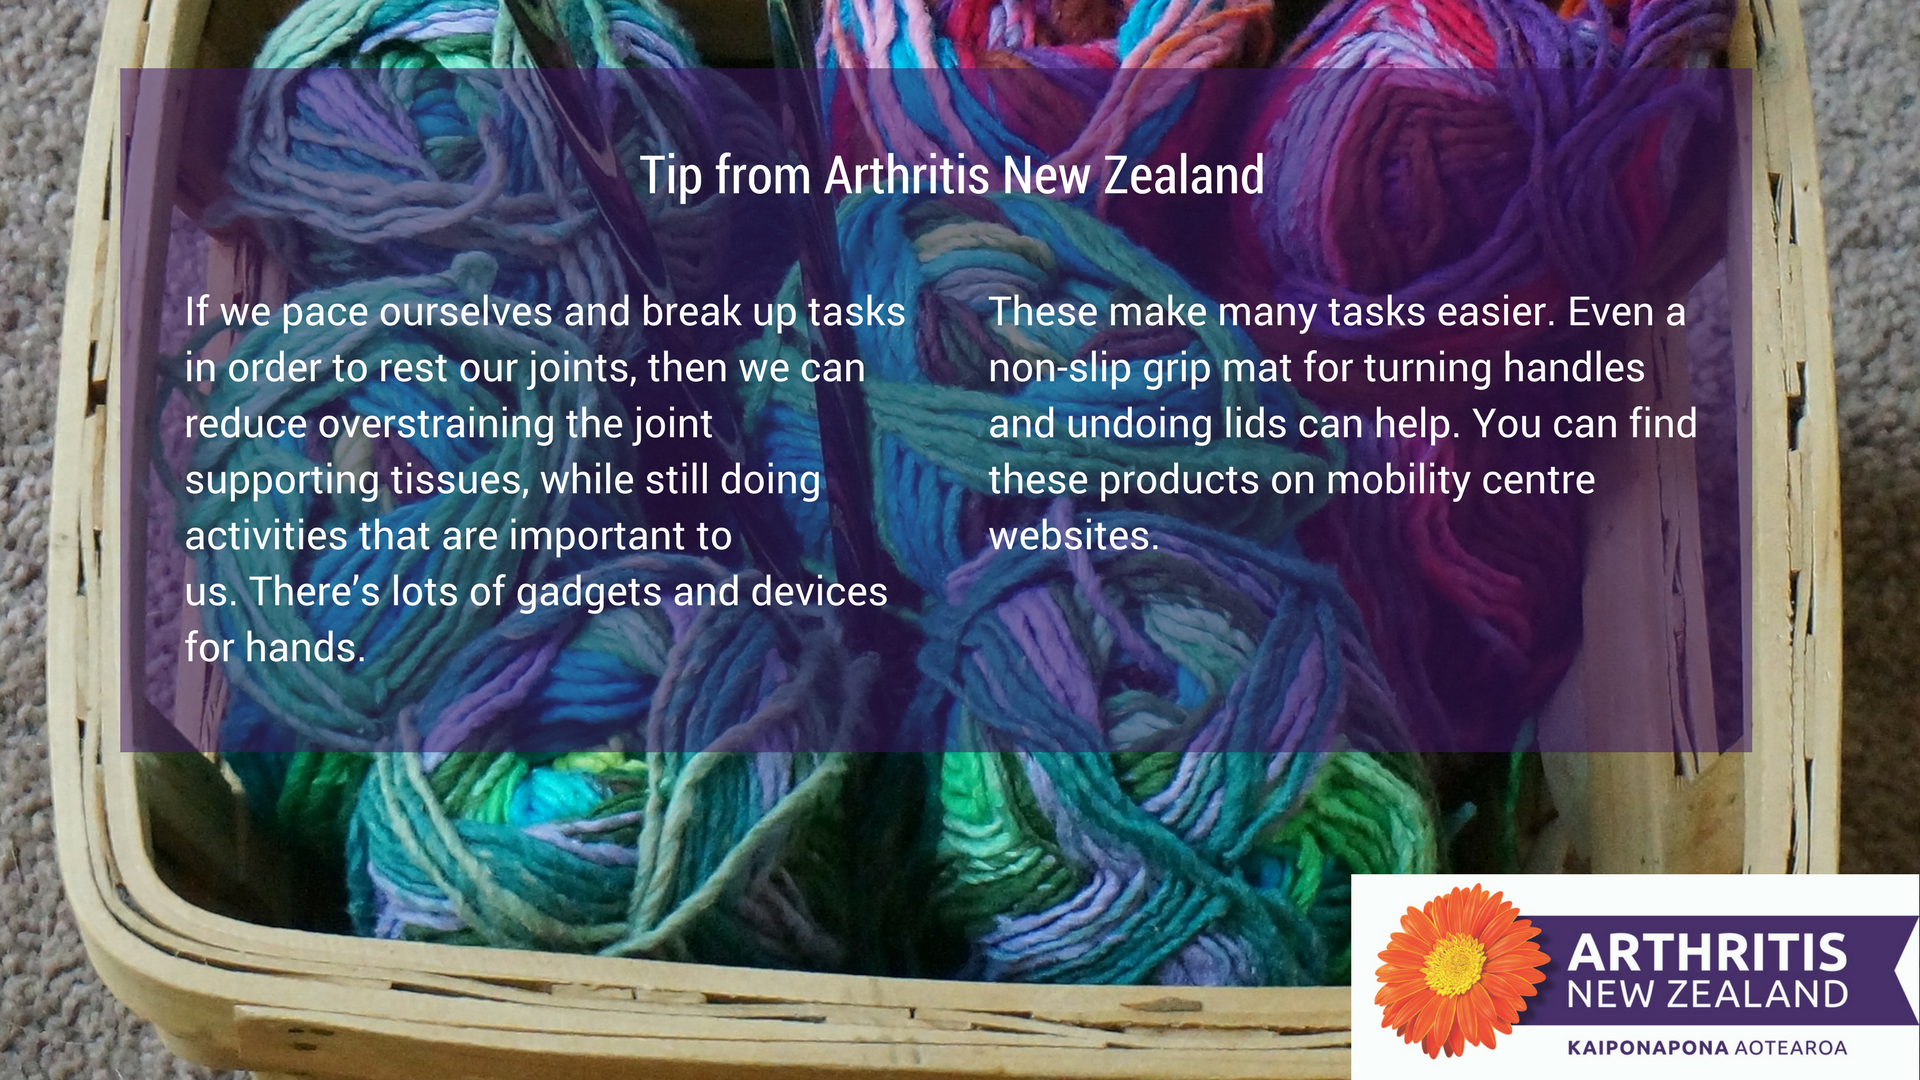 10 - Exercise tips from the Arthritis New Zealand community